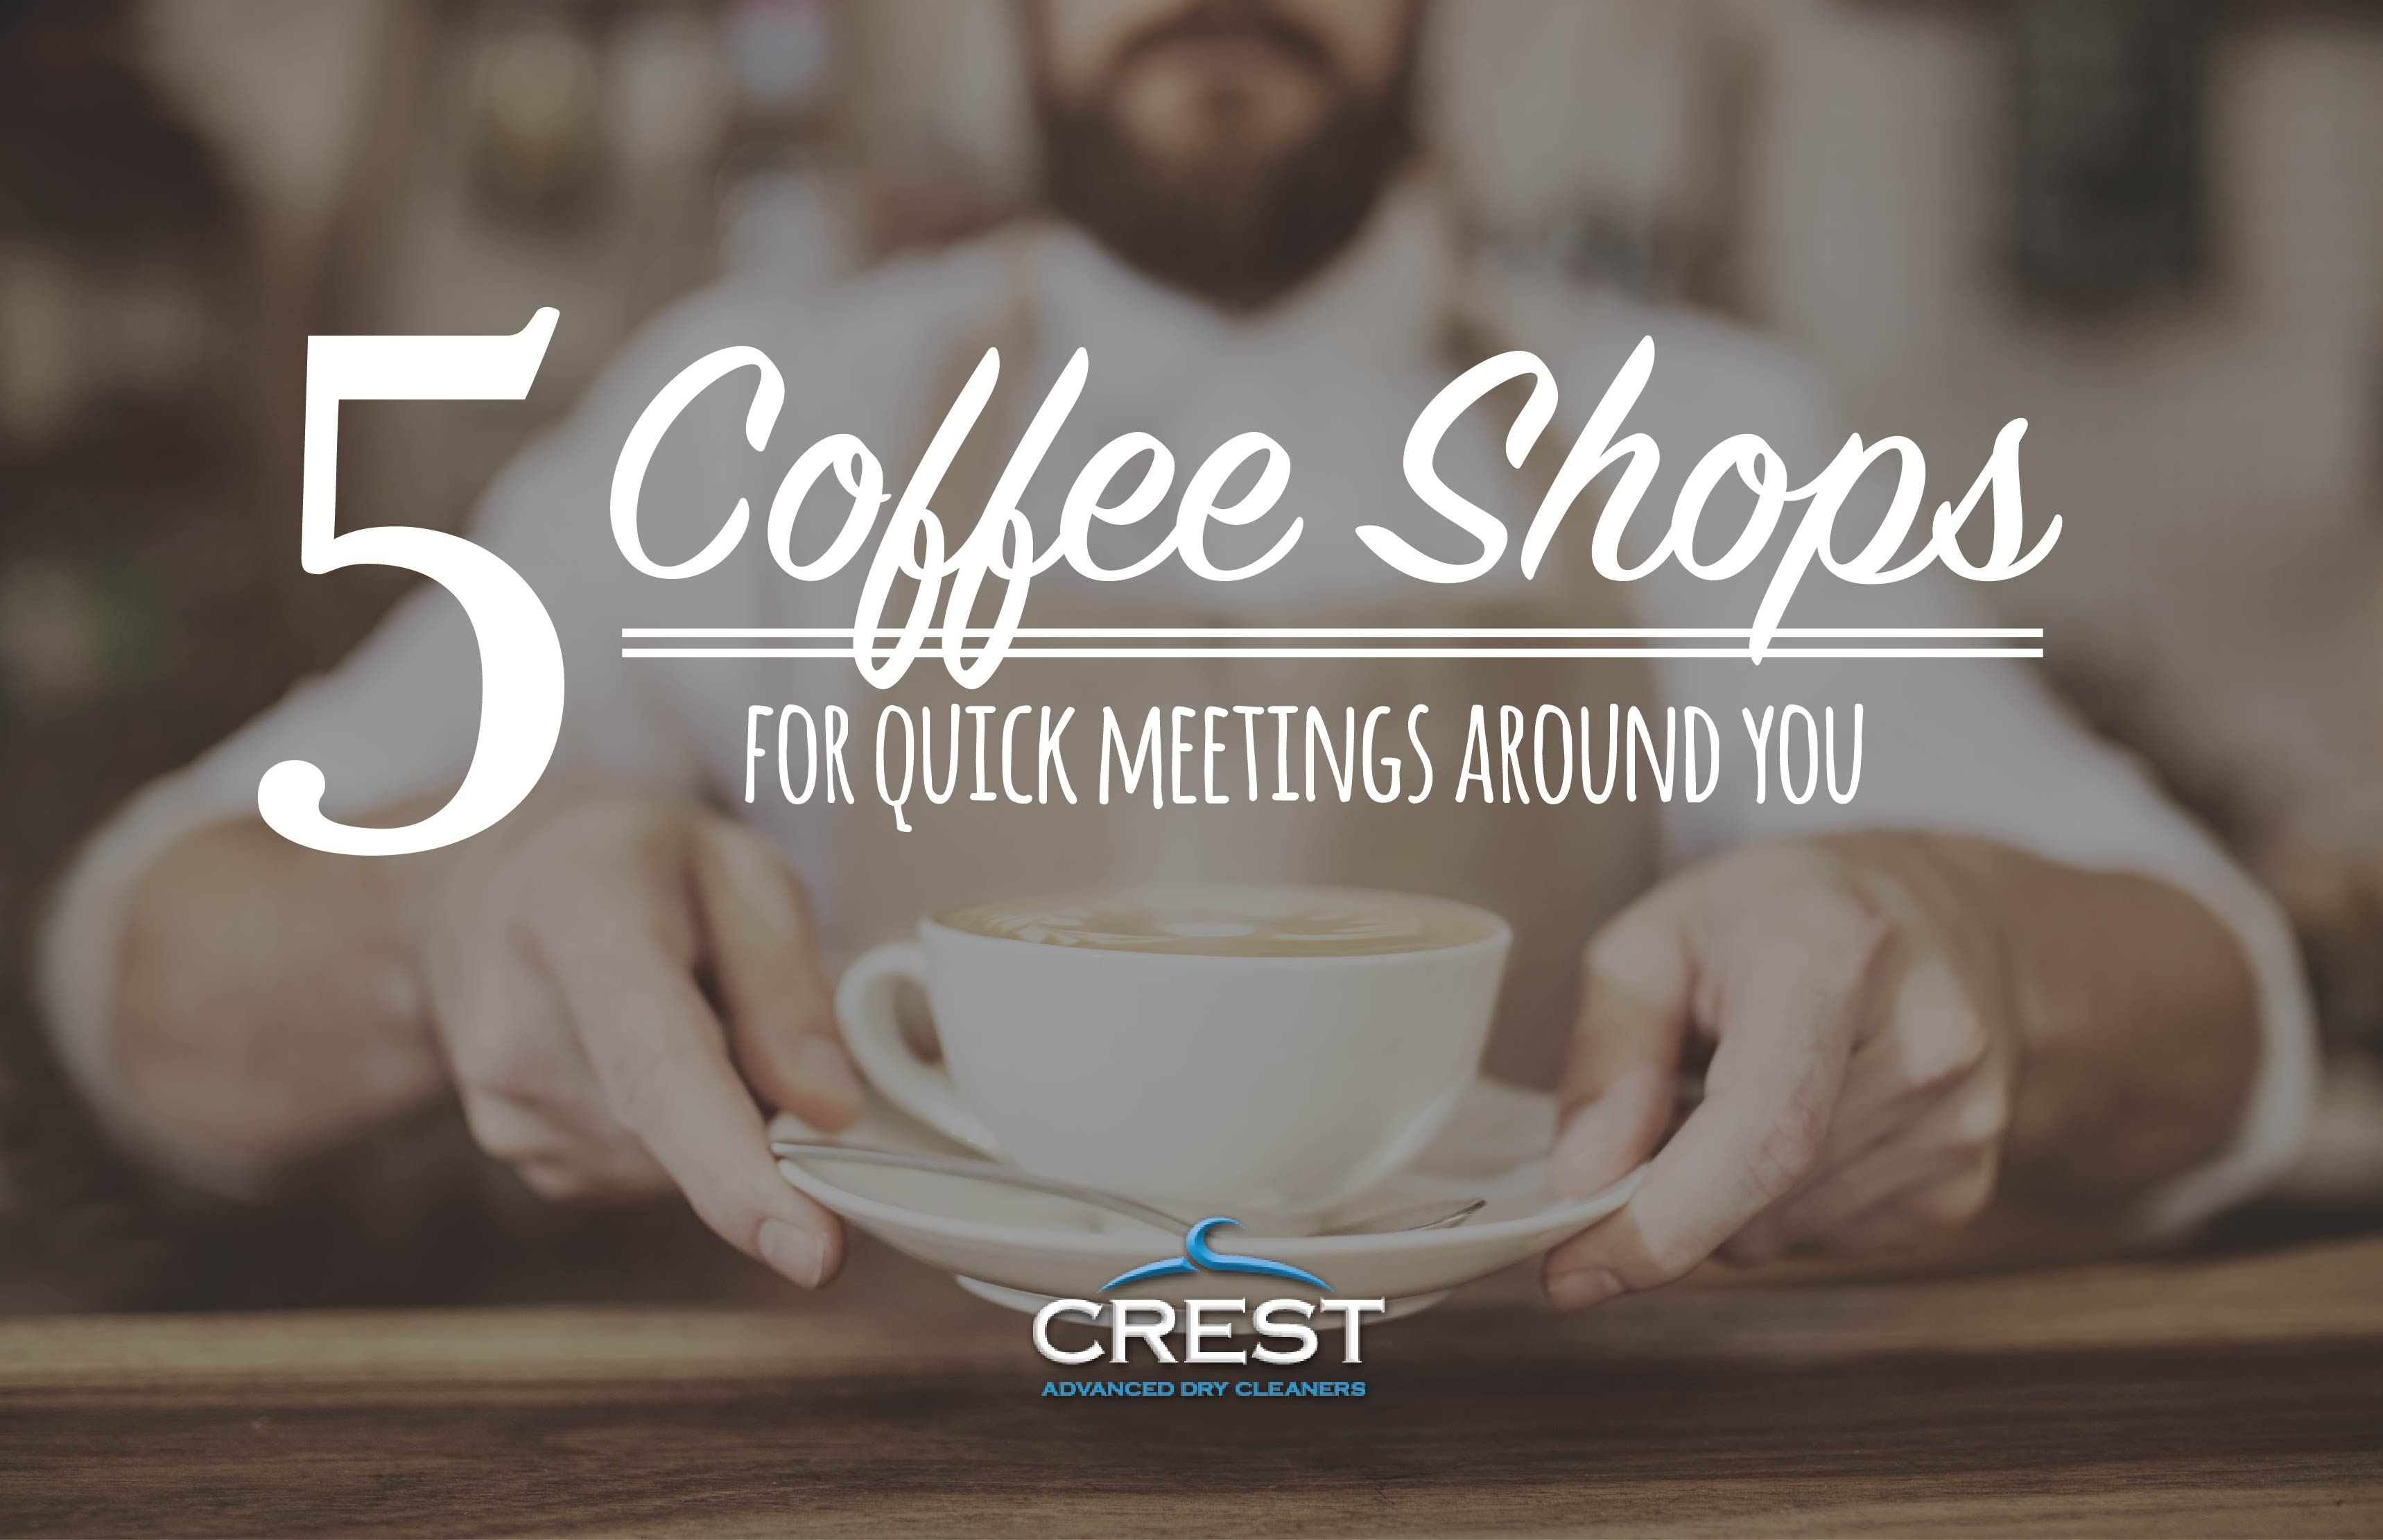 best coffee shop for business meetings